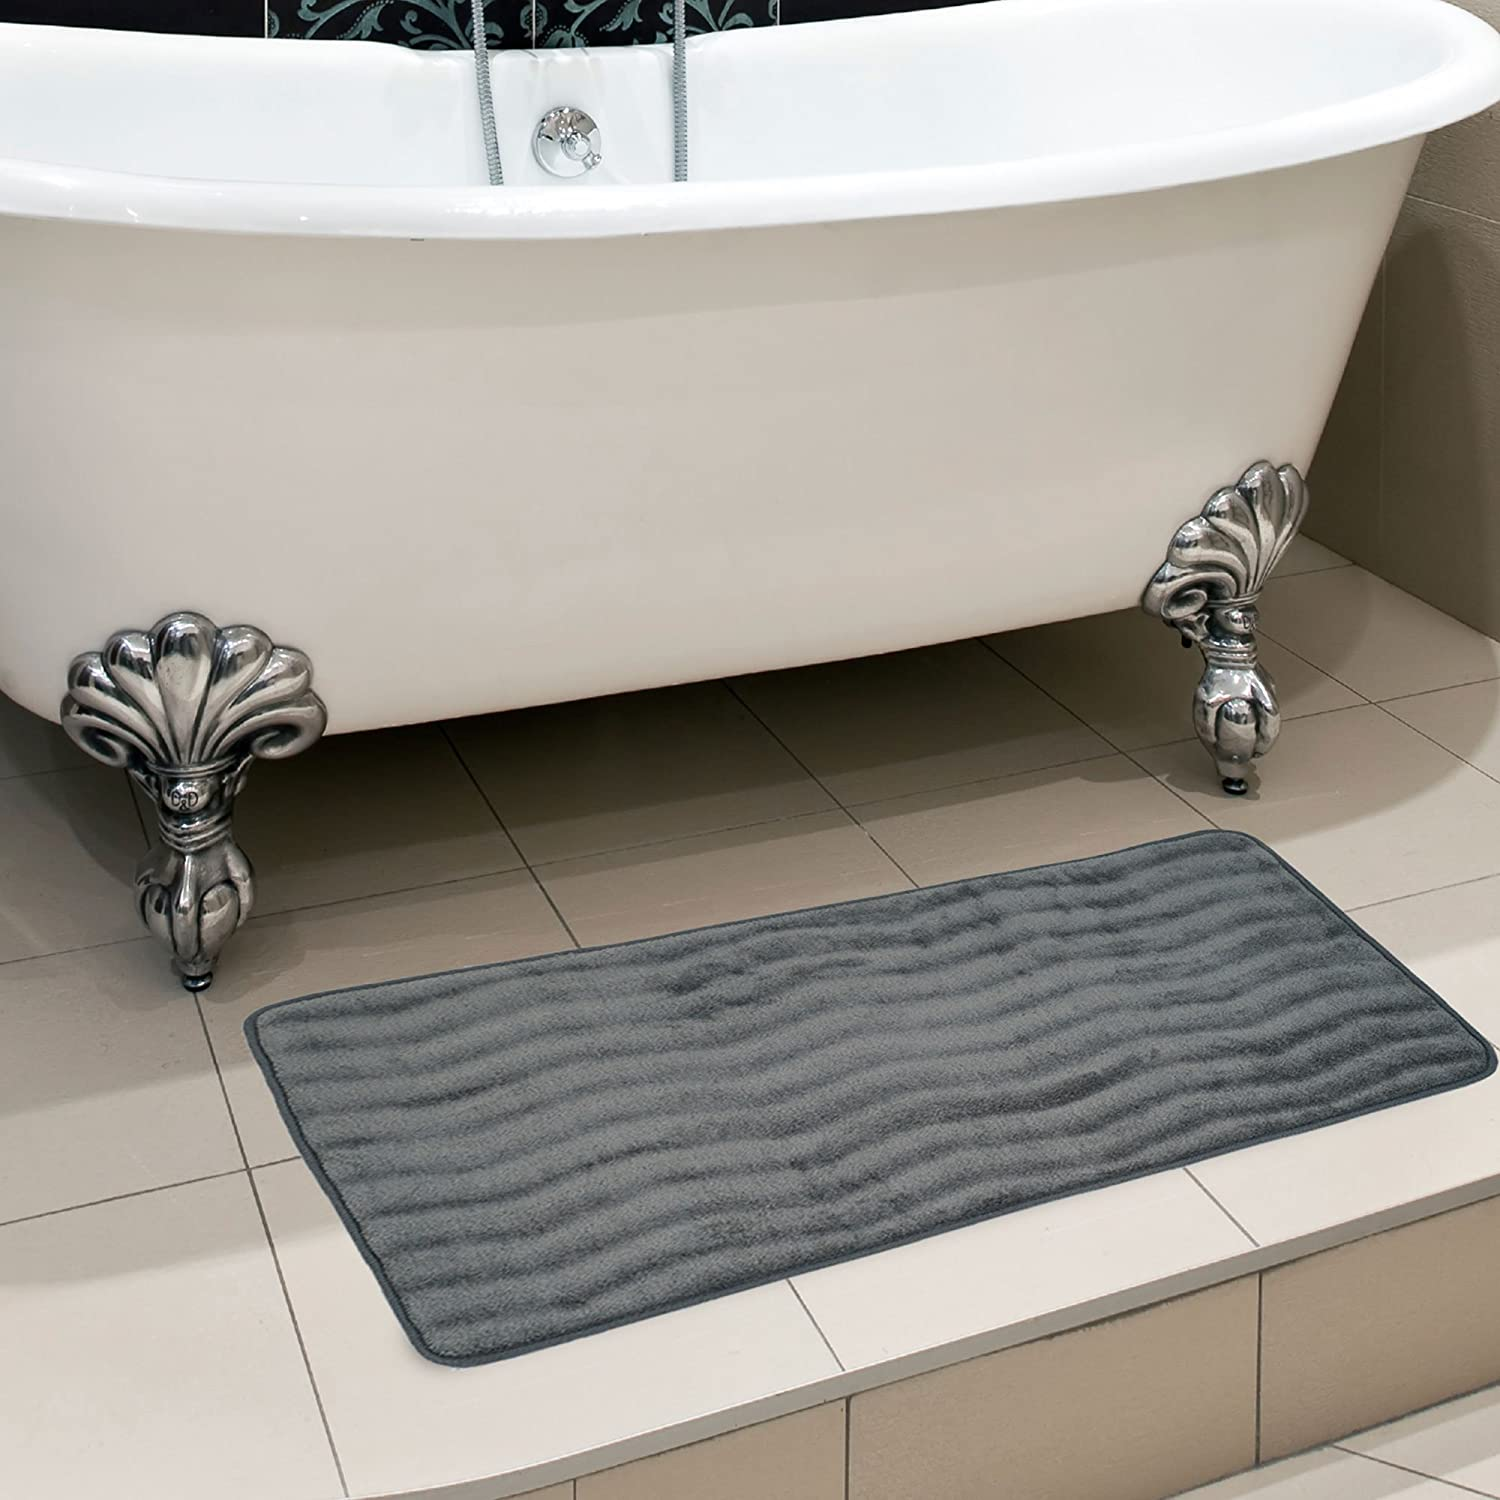 Platinum Oversized Padded Nonslip Accent Rug for Bathroom 67A-26655 Laundry Room Kitchen Wave Pattern Bedford Home Microfiber Memory Foam Bathmat